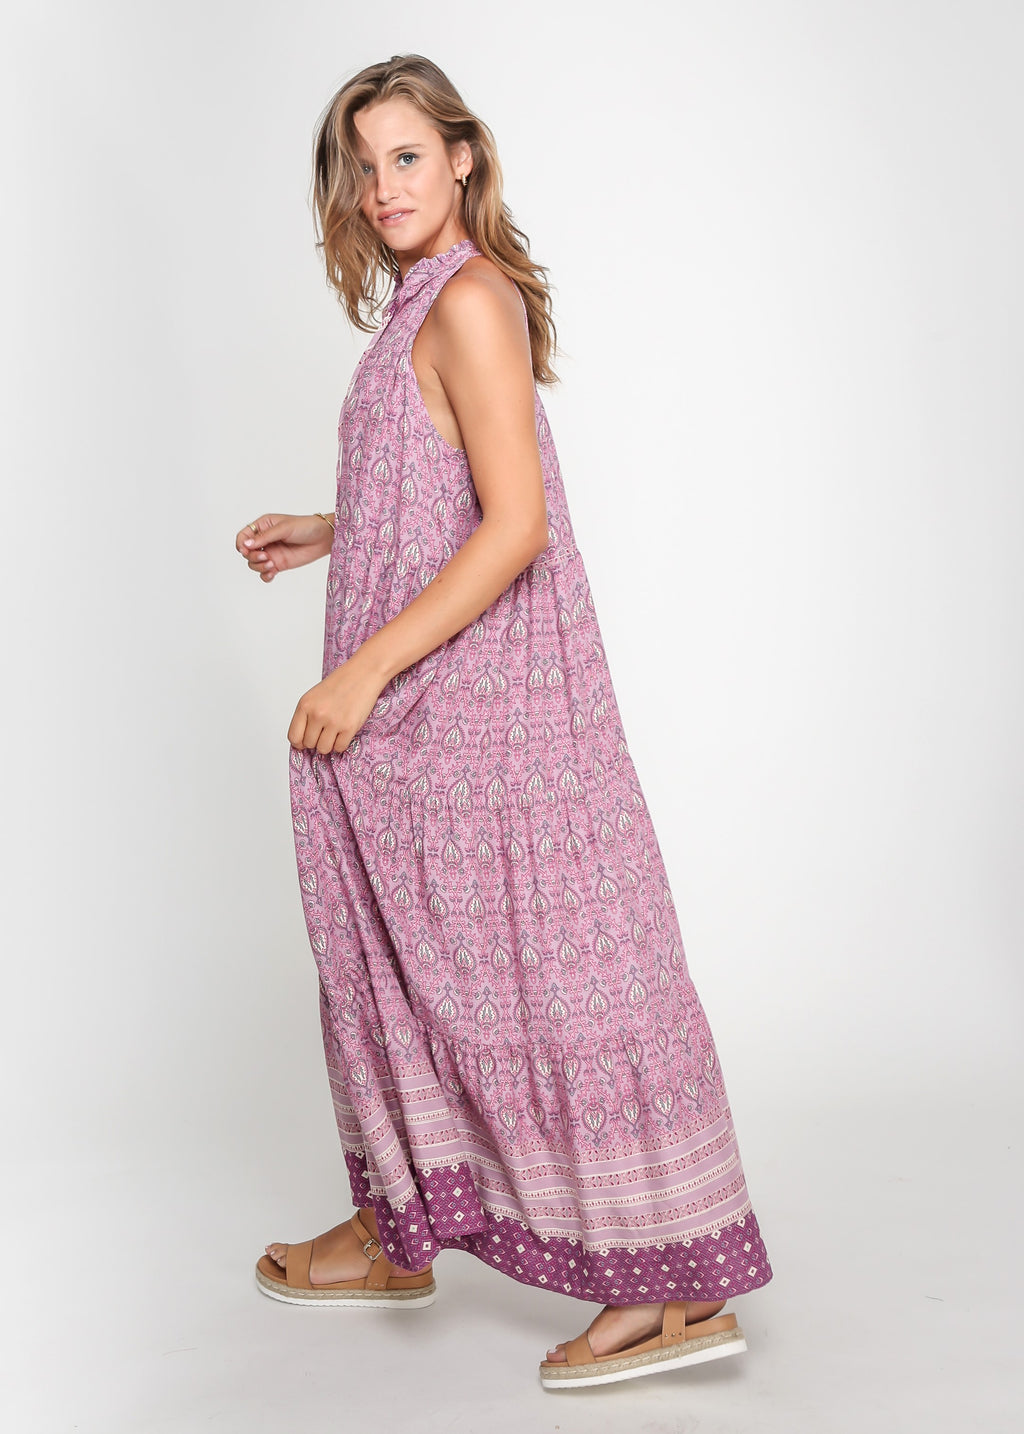 CHELSY DRESS - PURPLE PRINT